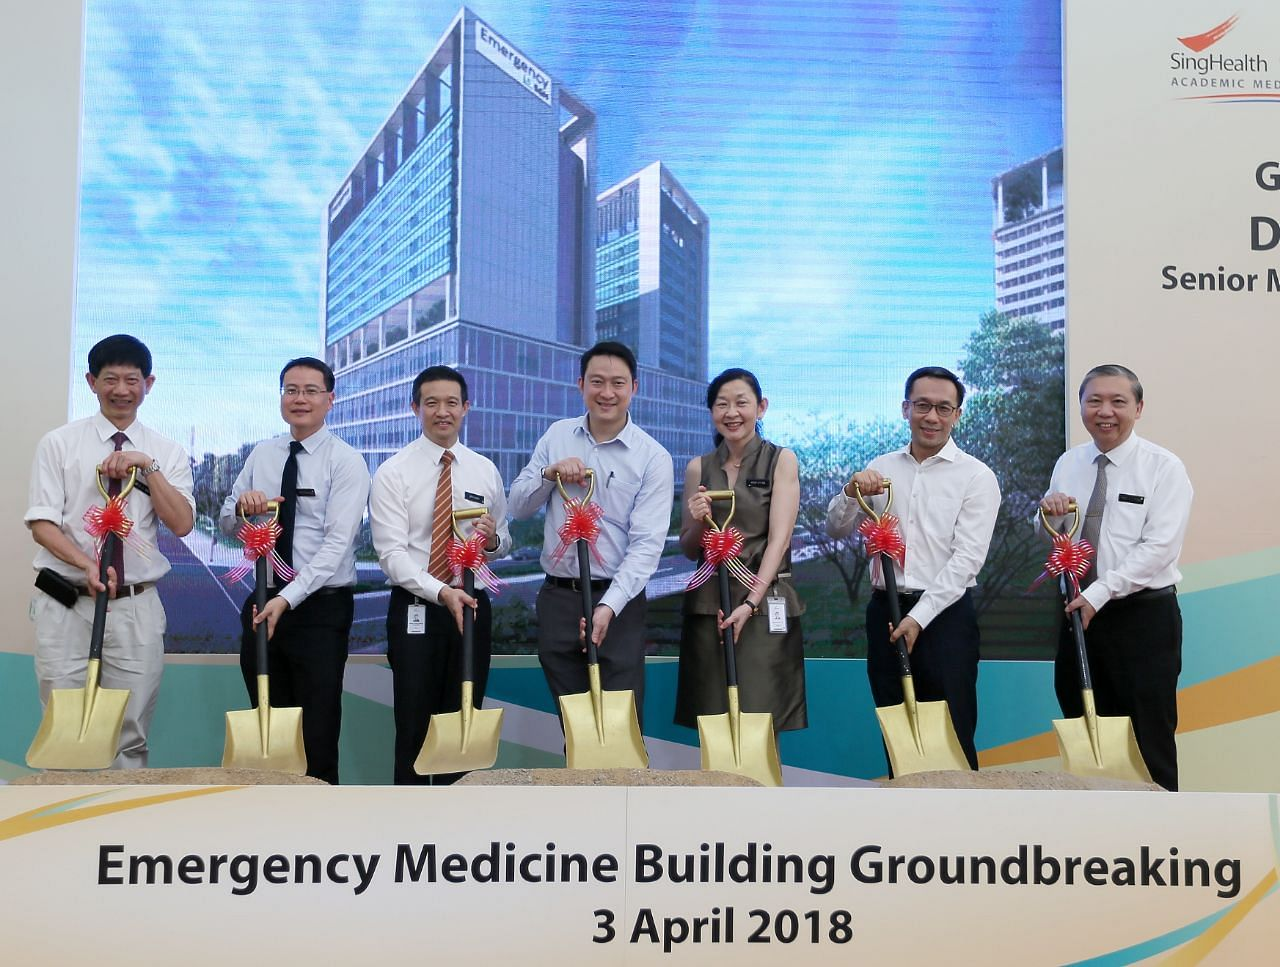 SGH expanding emergency care facilities with new building as